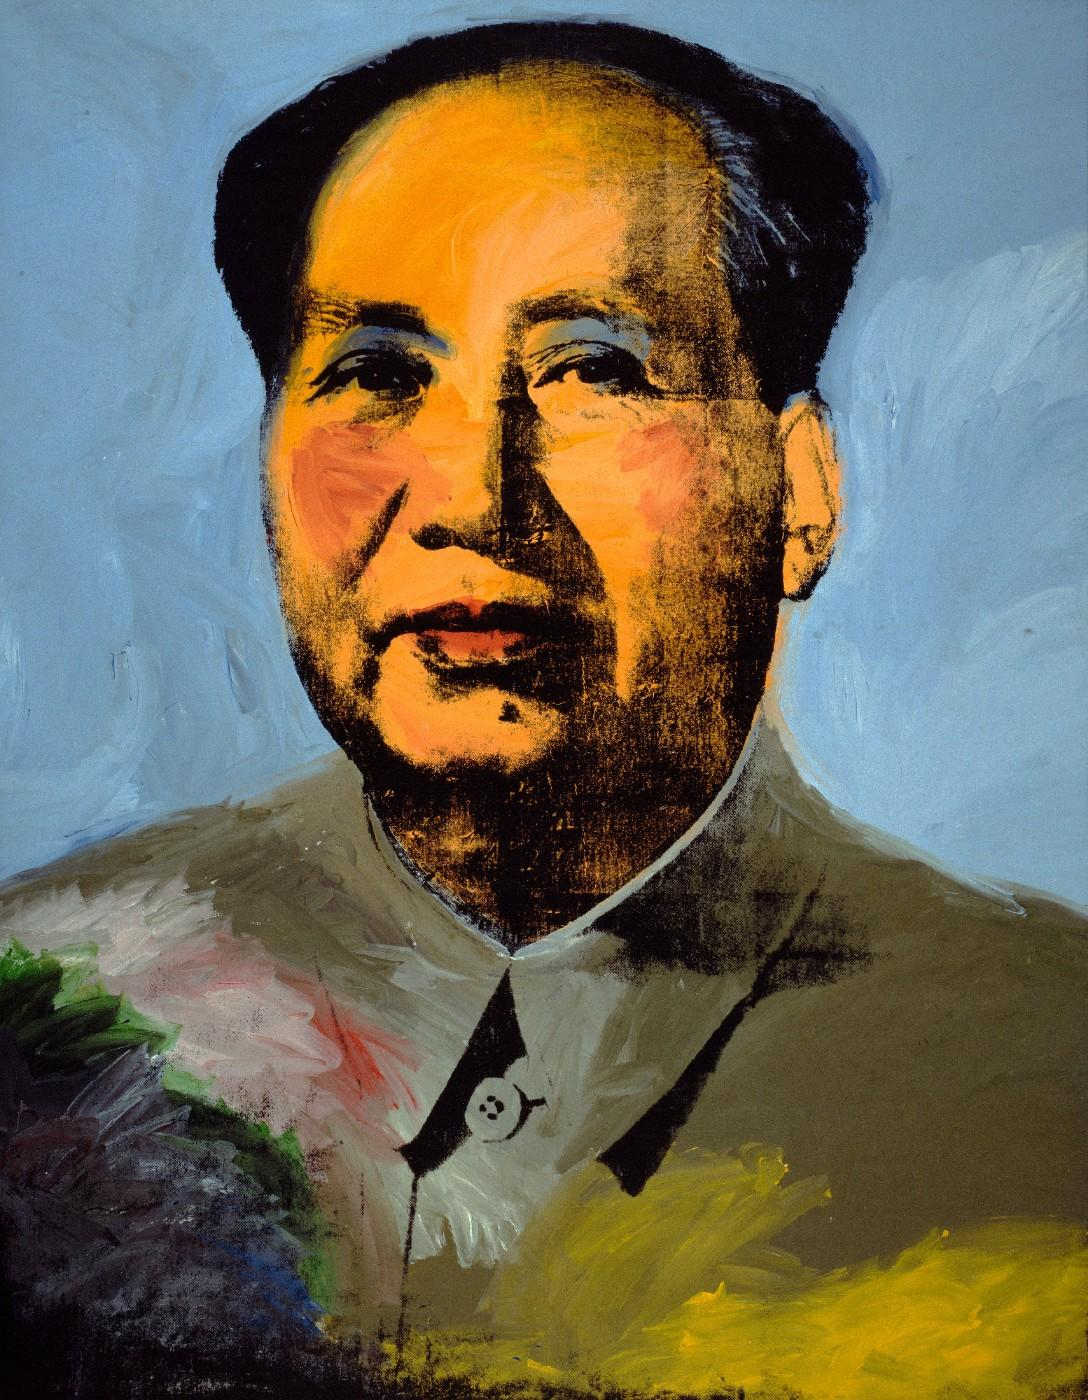 Andy Warhol (1928–1987), Mao, 1972